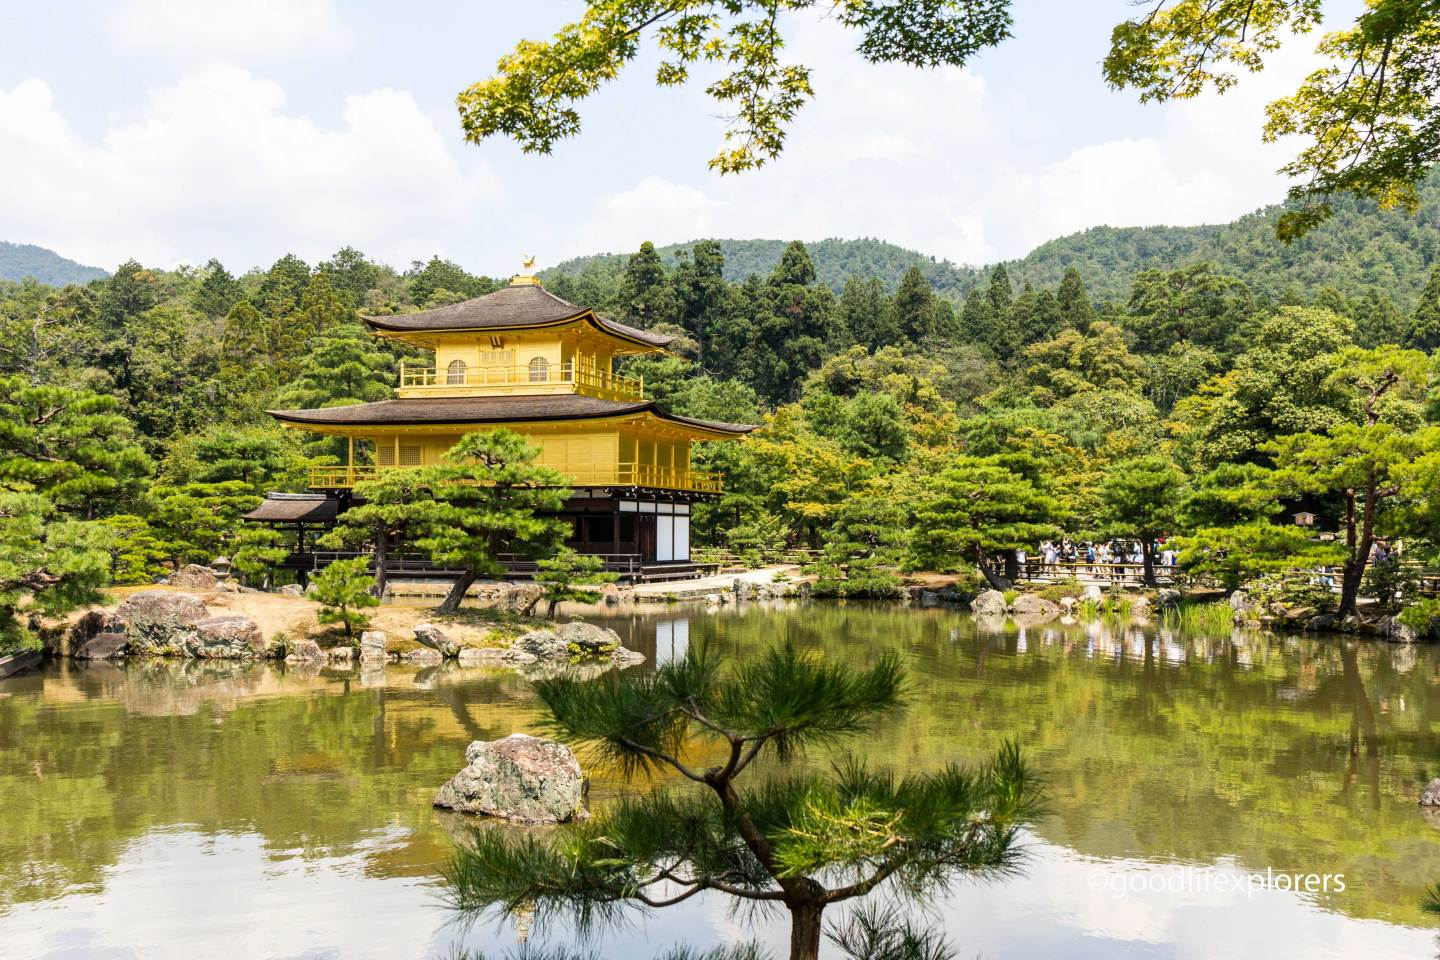 Japan; kyoto; Arashiyama; Kinkaku-ji; Fushimi- Inari; Temple; tourism; attraction; travel, tori, red gates,3 Places You Must Visit Near Kyoto